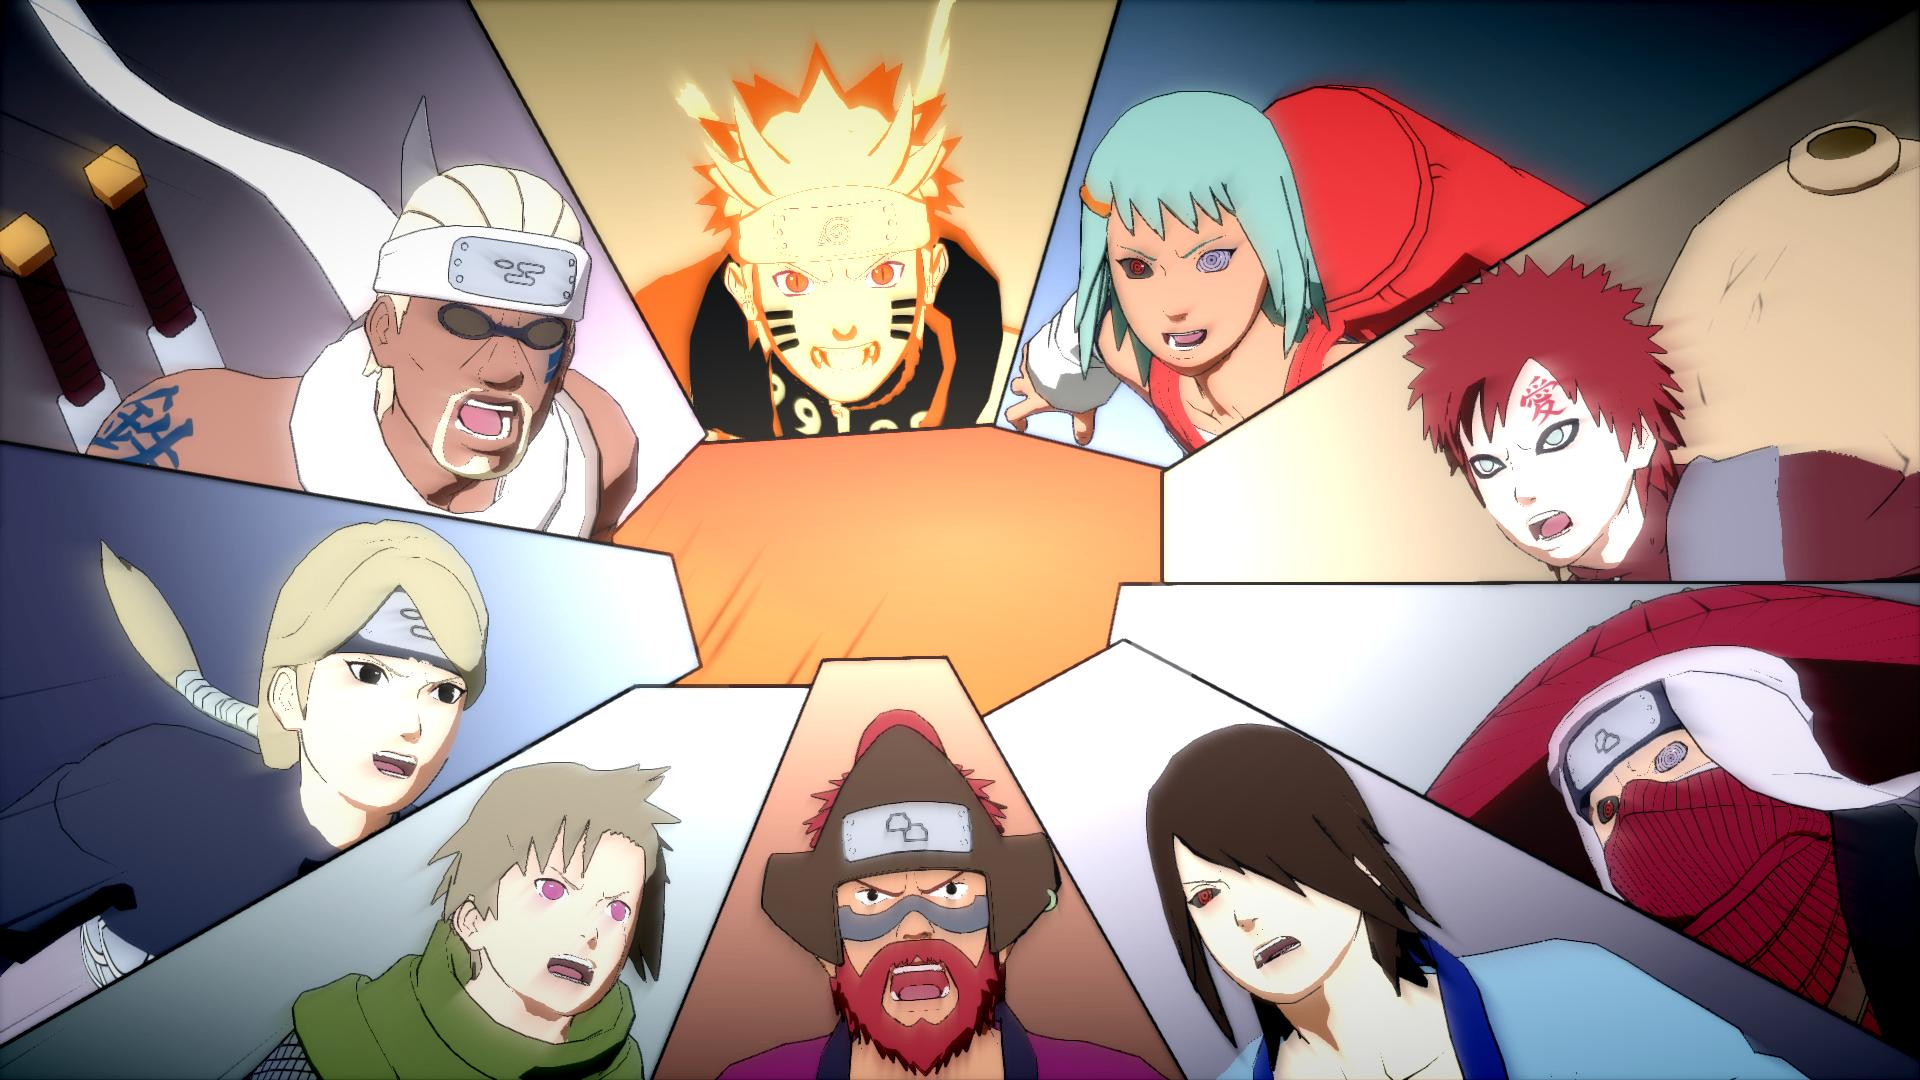 Naruto Shippuden: Ultimate Ninja Storm 4 Backgrounds, Pictures, Images